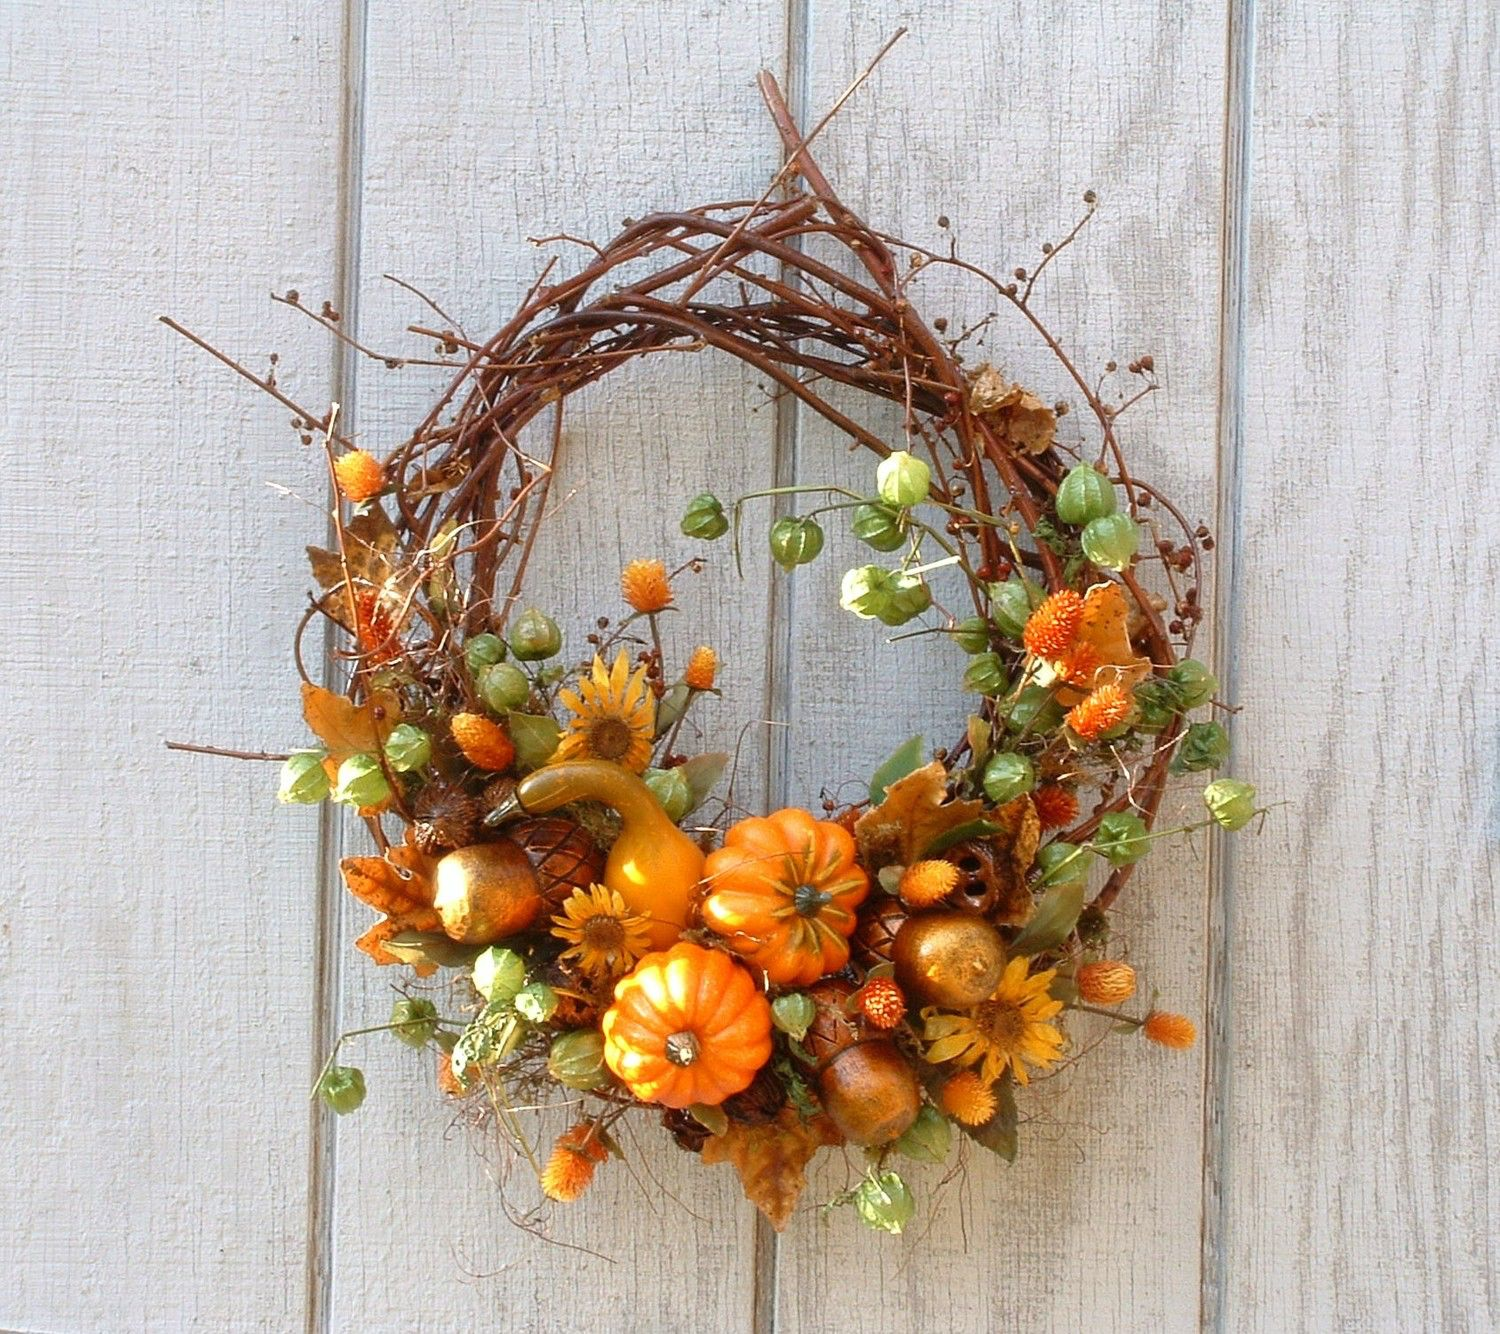 Window decor for fall  image from turnkeyoilwpcontentuploadstrend